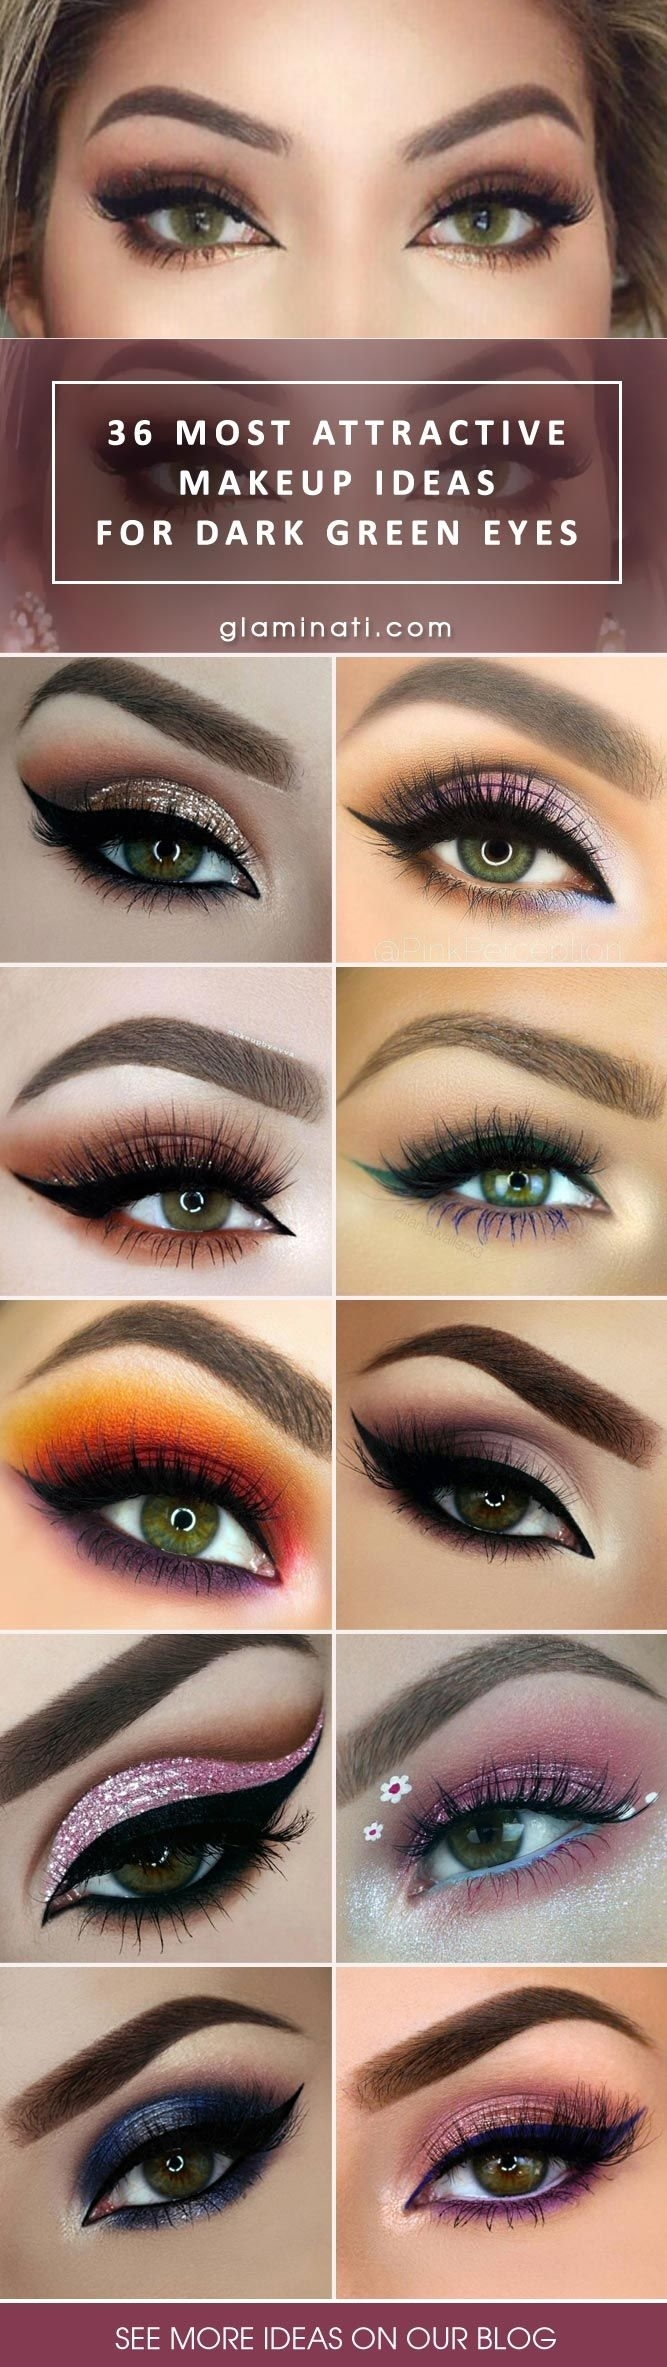 42 Most Attractive Makeup Ideas For Dark Green Eyes | Makeup in What Color Eyeshadow Looks Good With Hazel Green Eyes